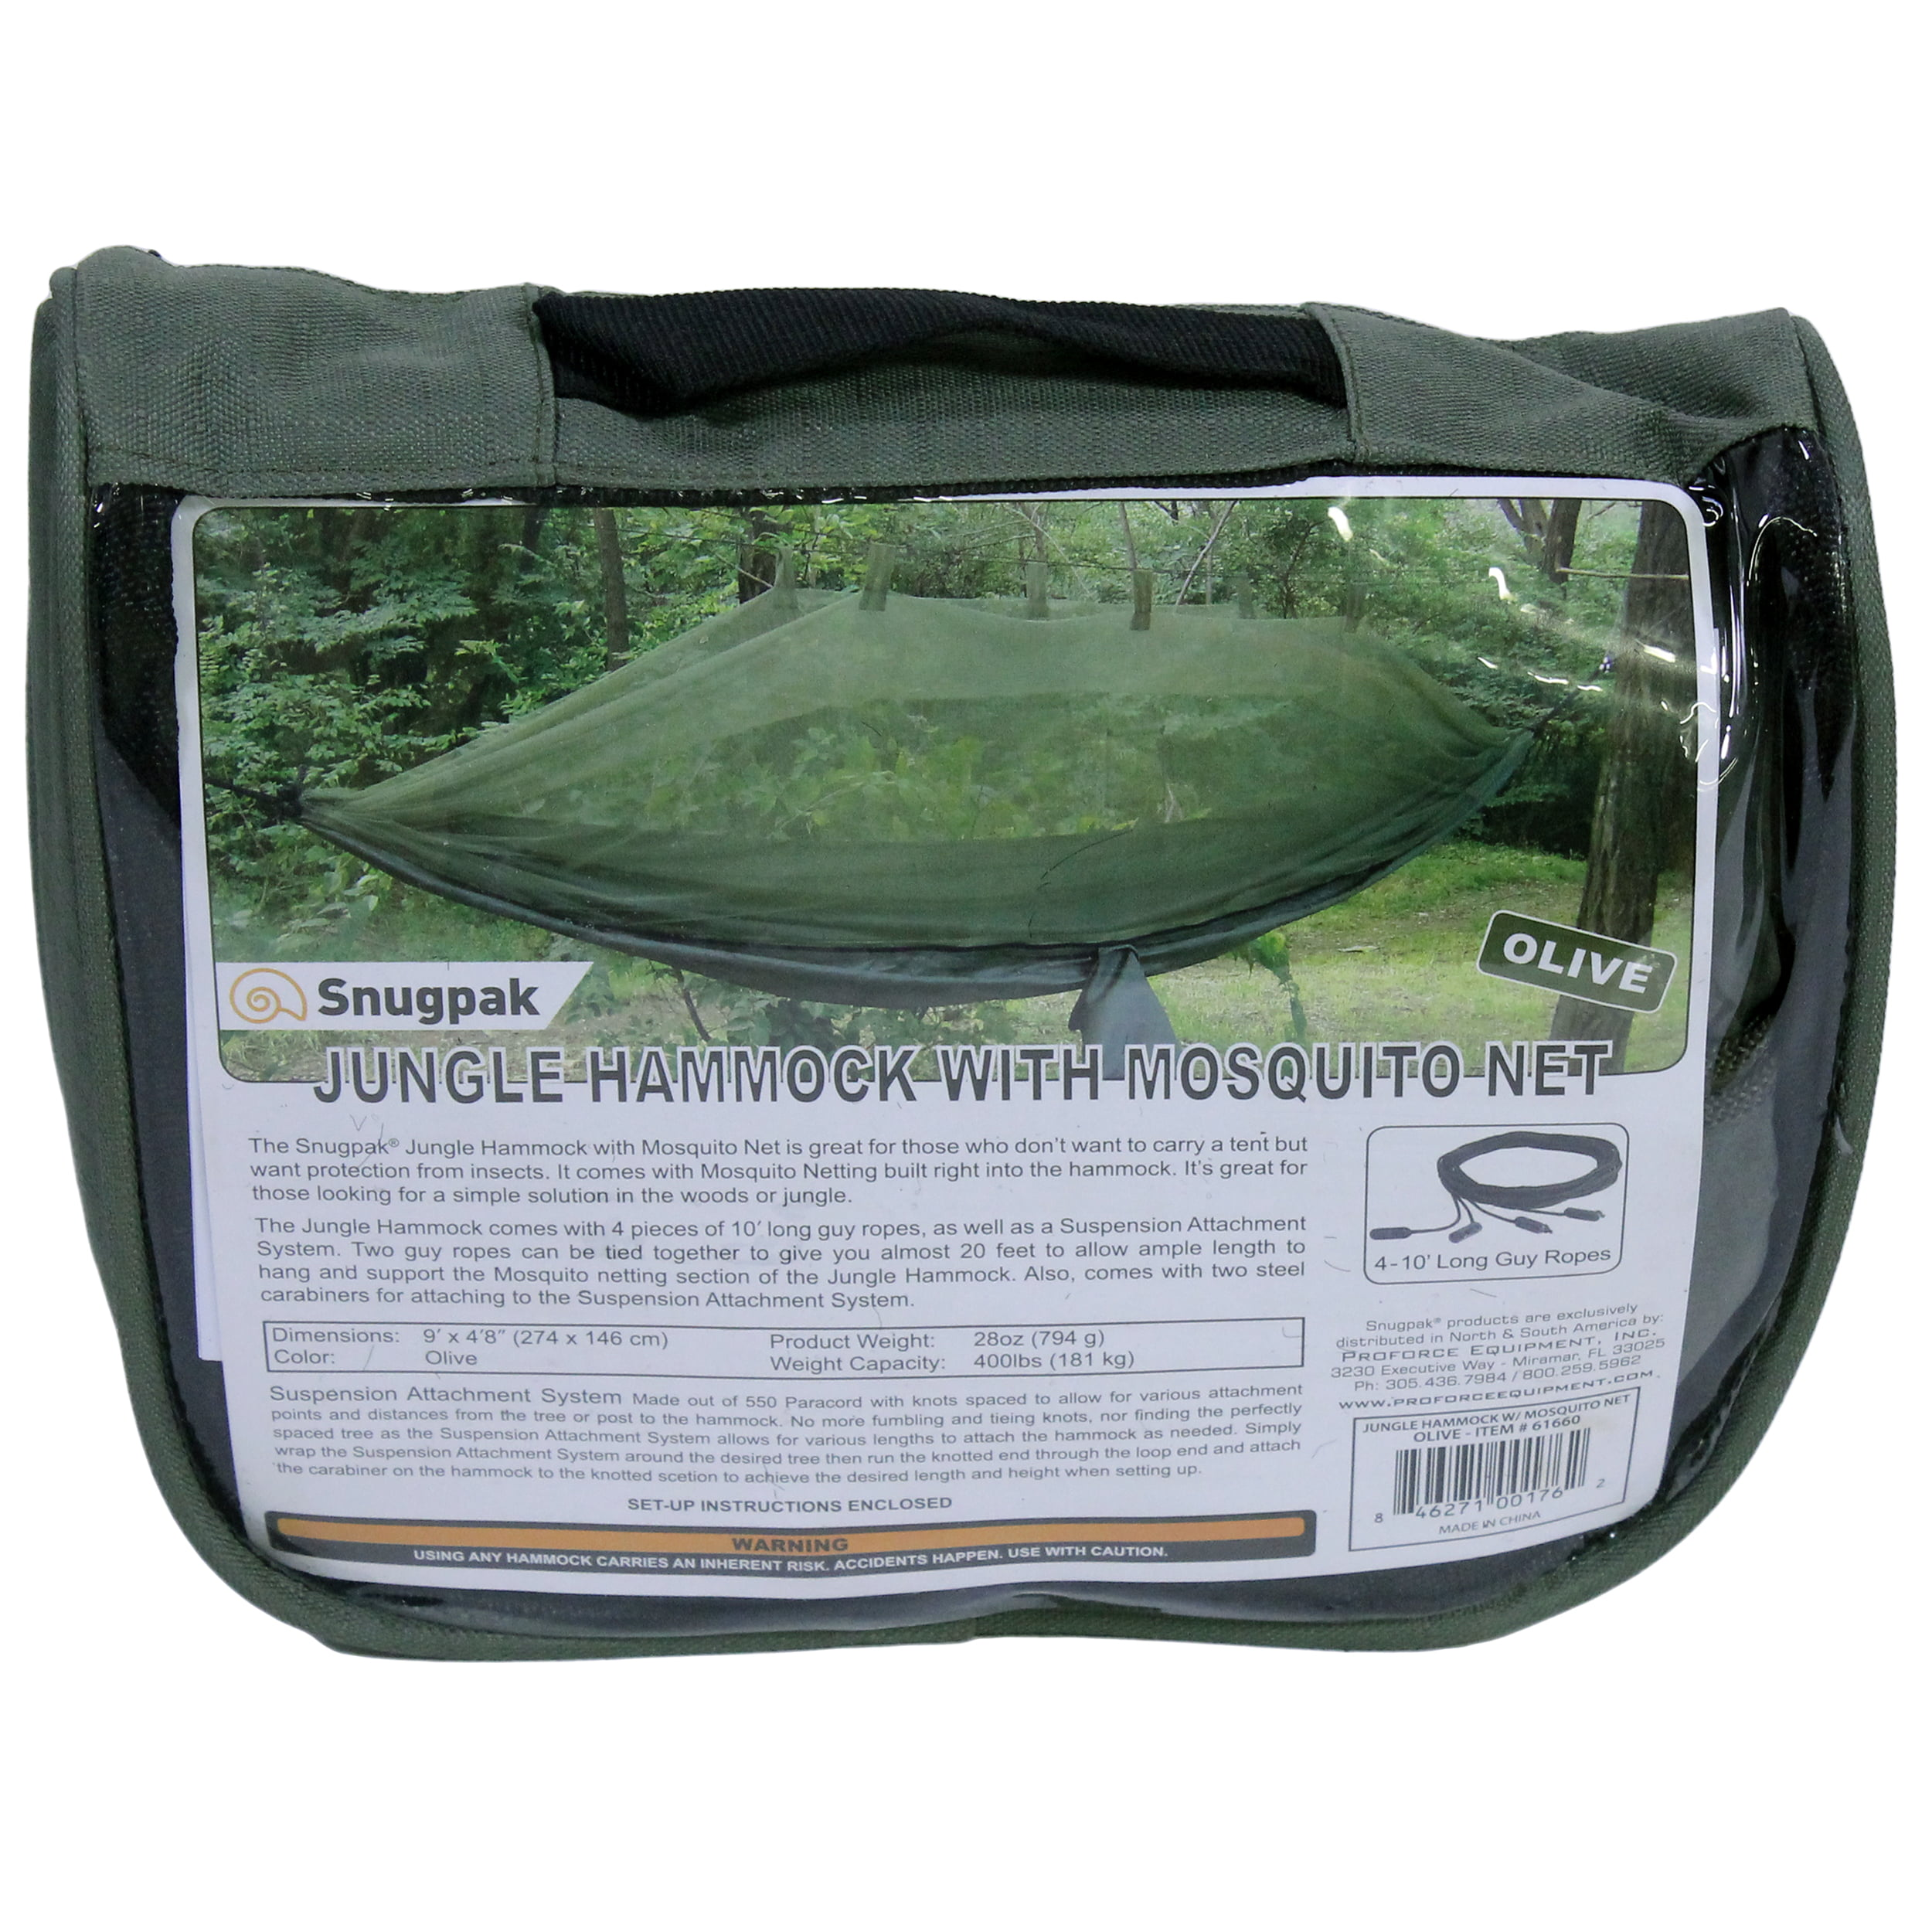 Proforce Equipment Jungle Hammock with Mosquito Net, Olive by Proforce Equipment